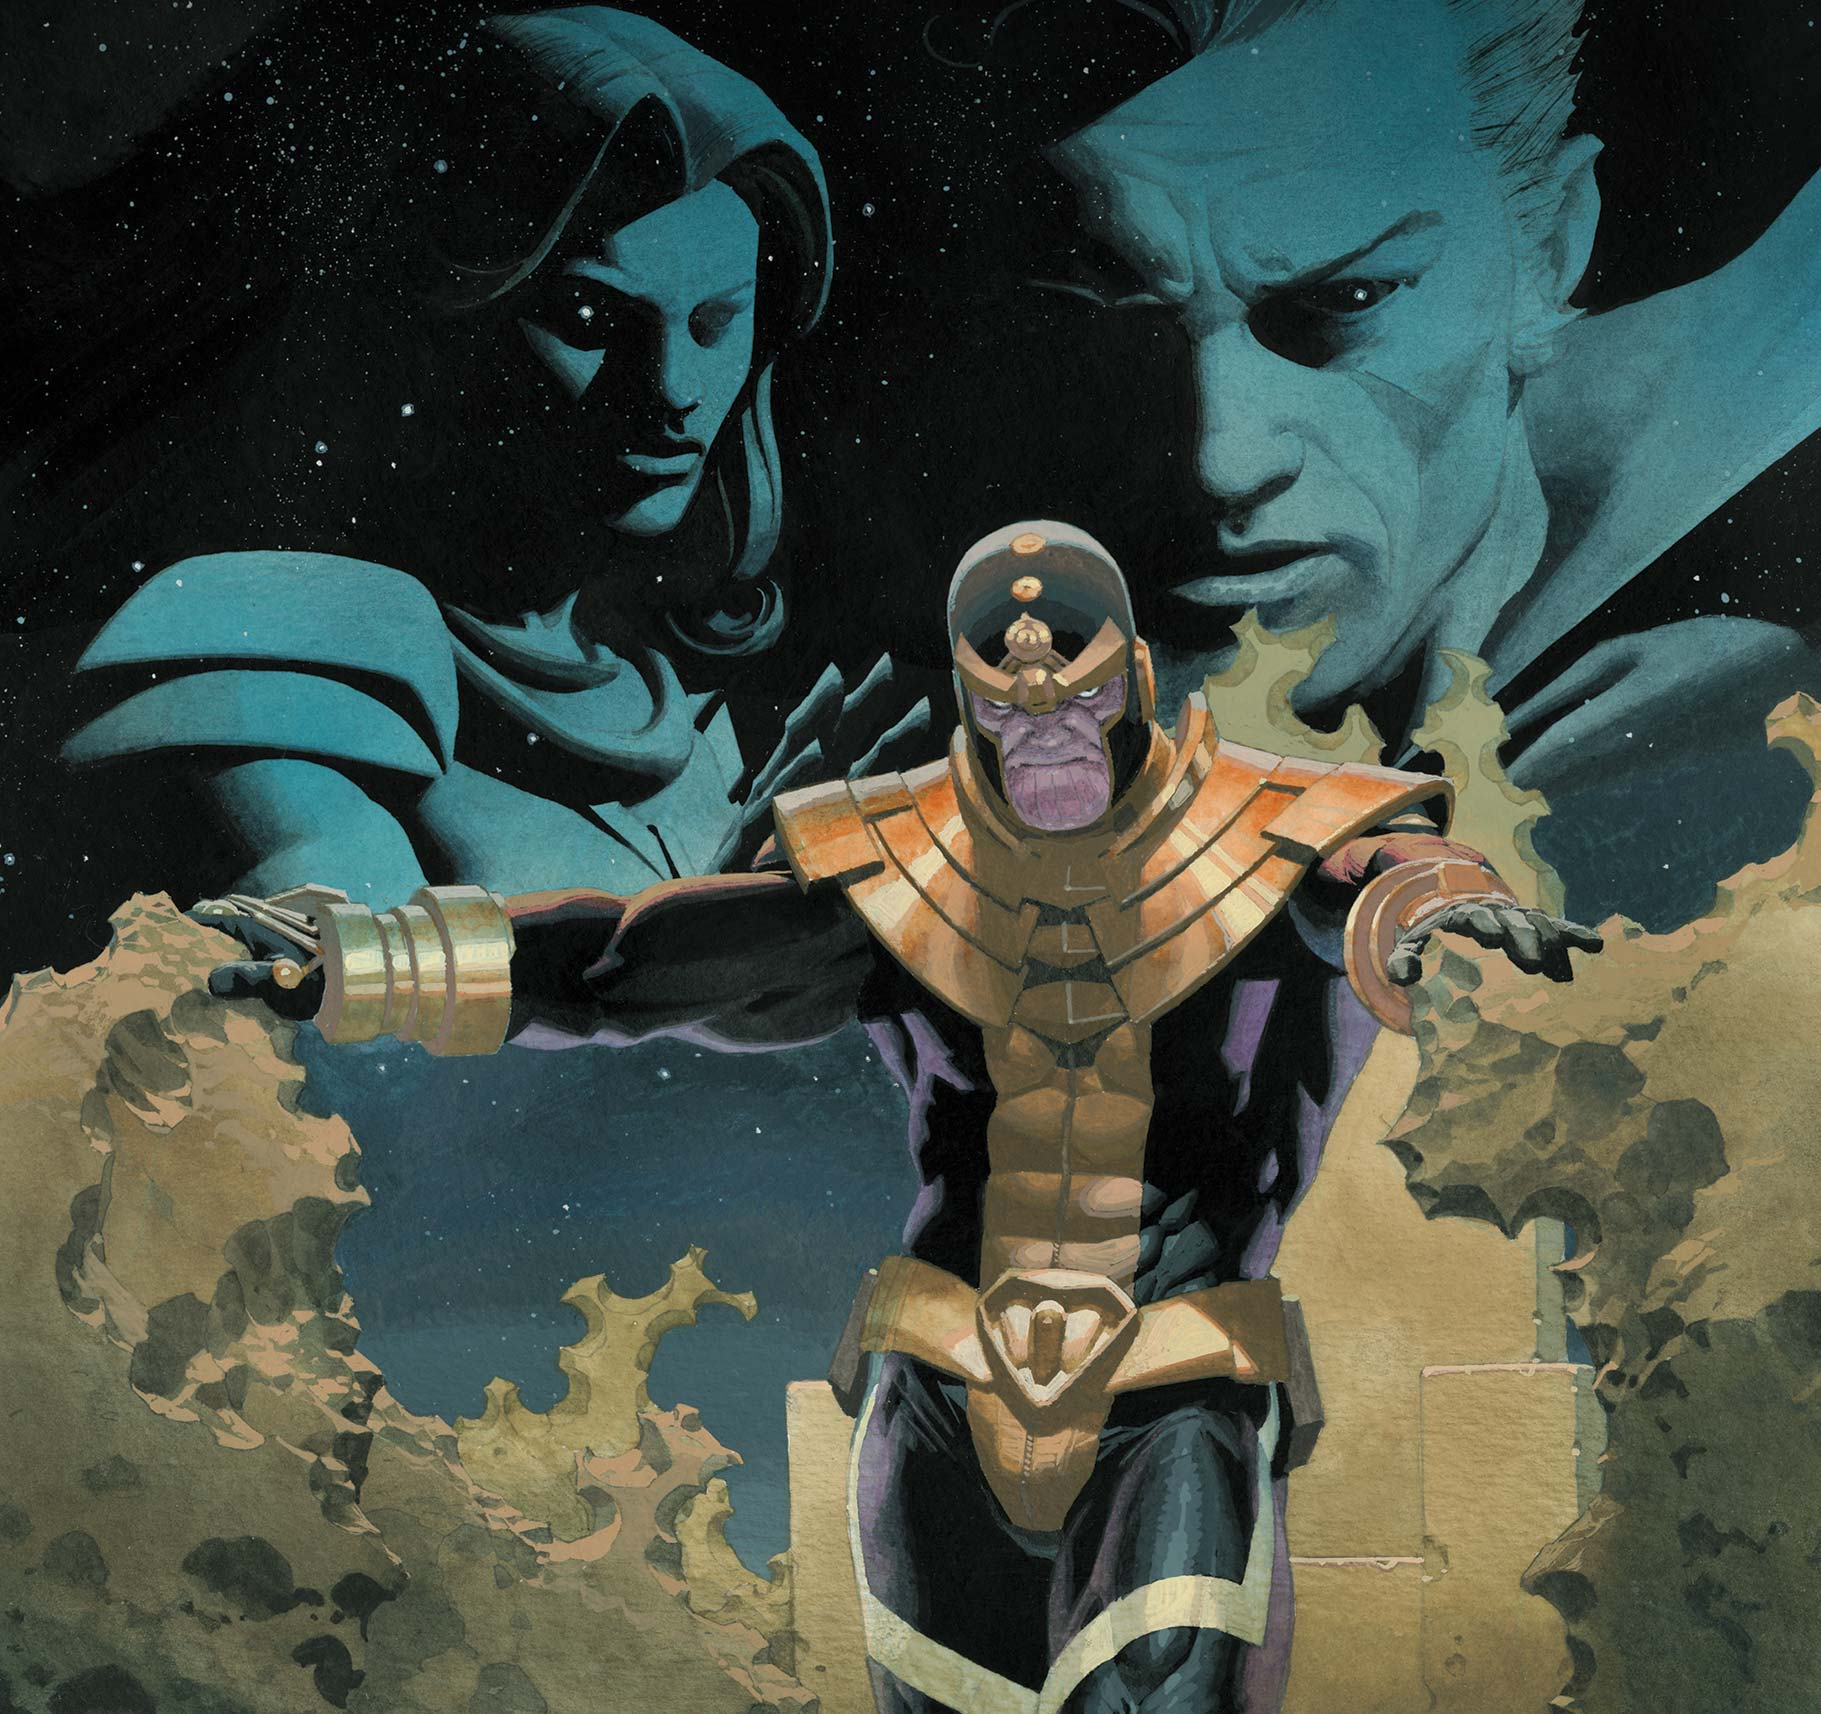 'Eternals: Thanos Rises' #1 is an otherworldly joy to read